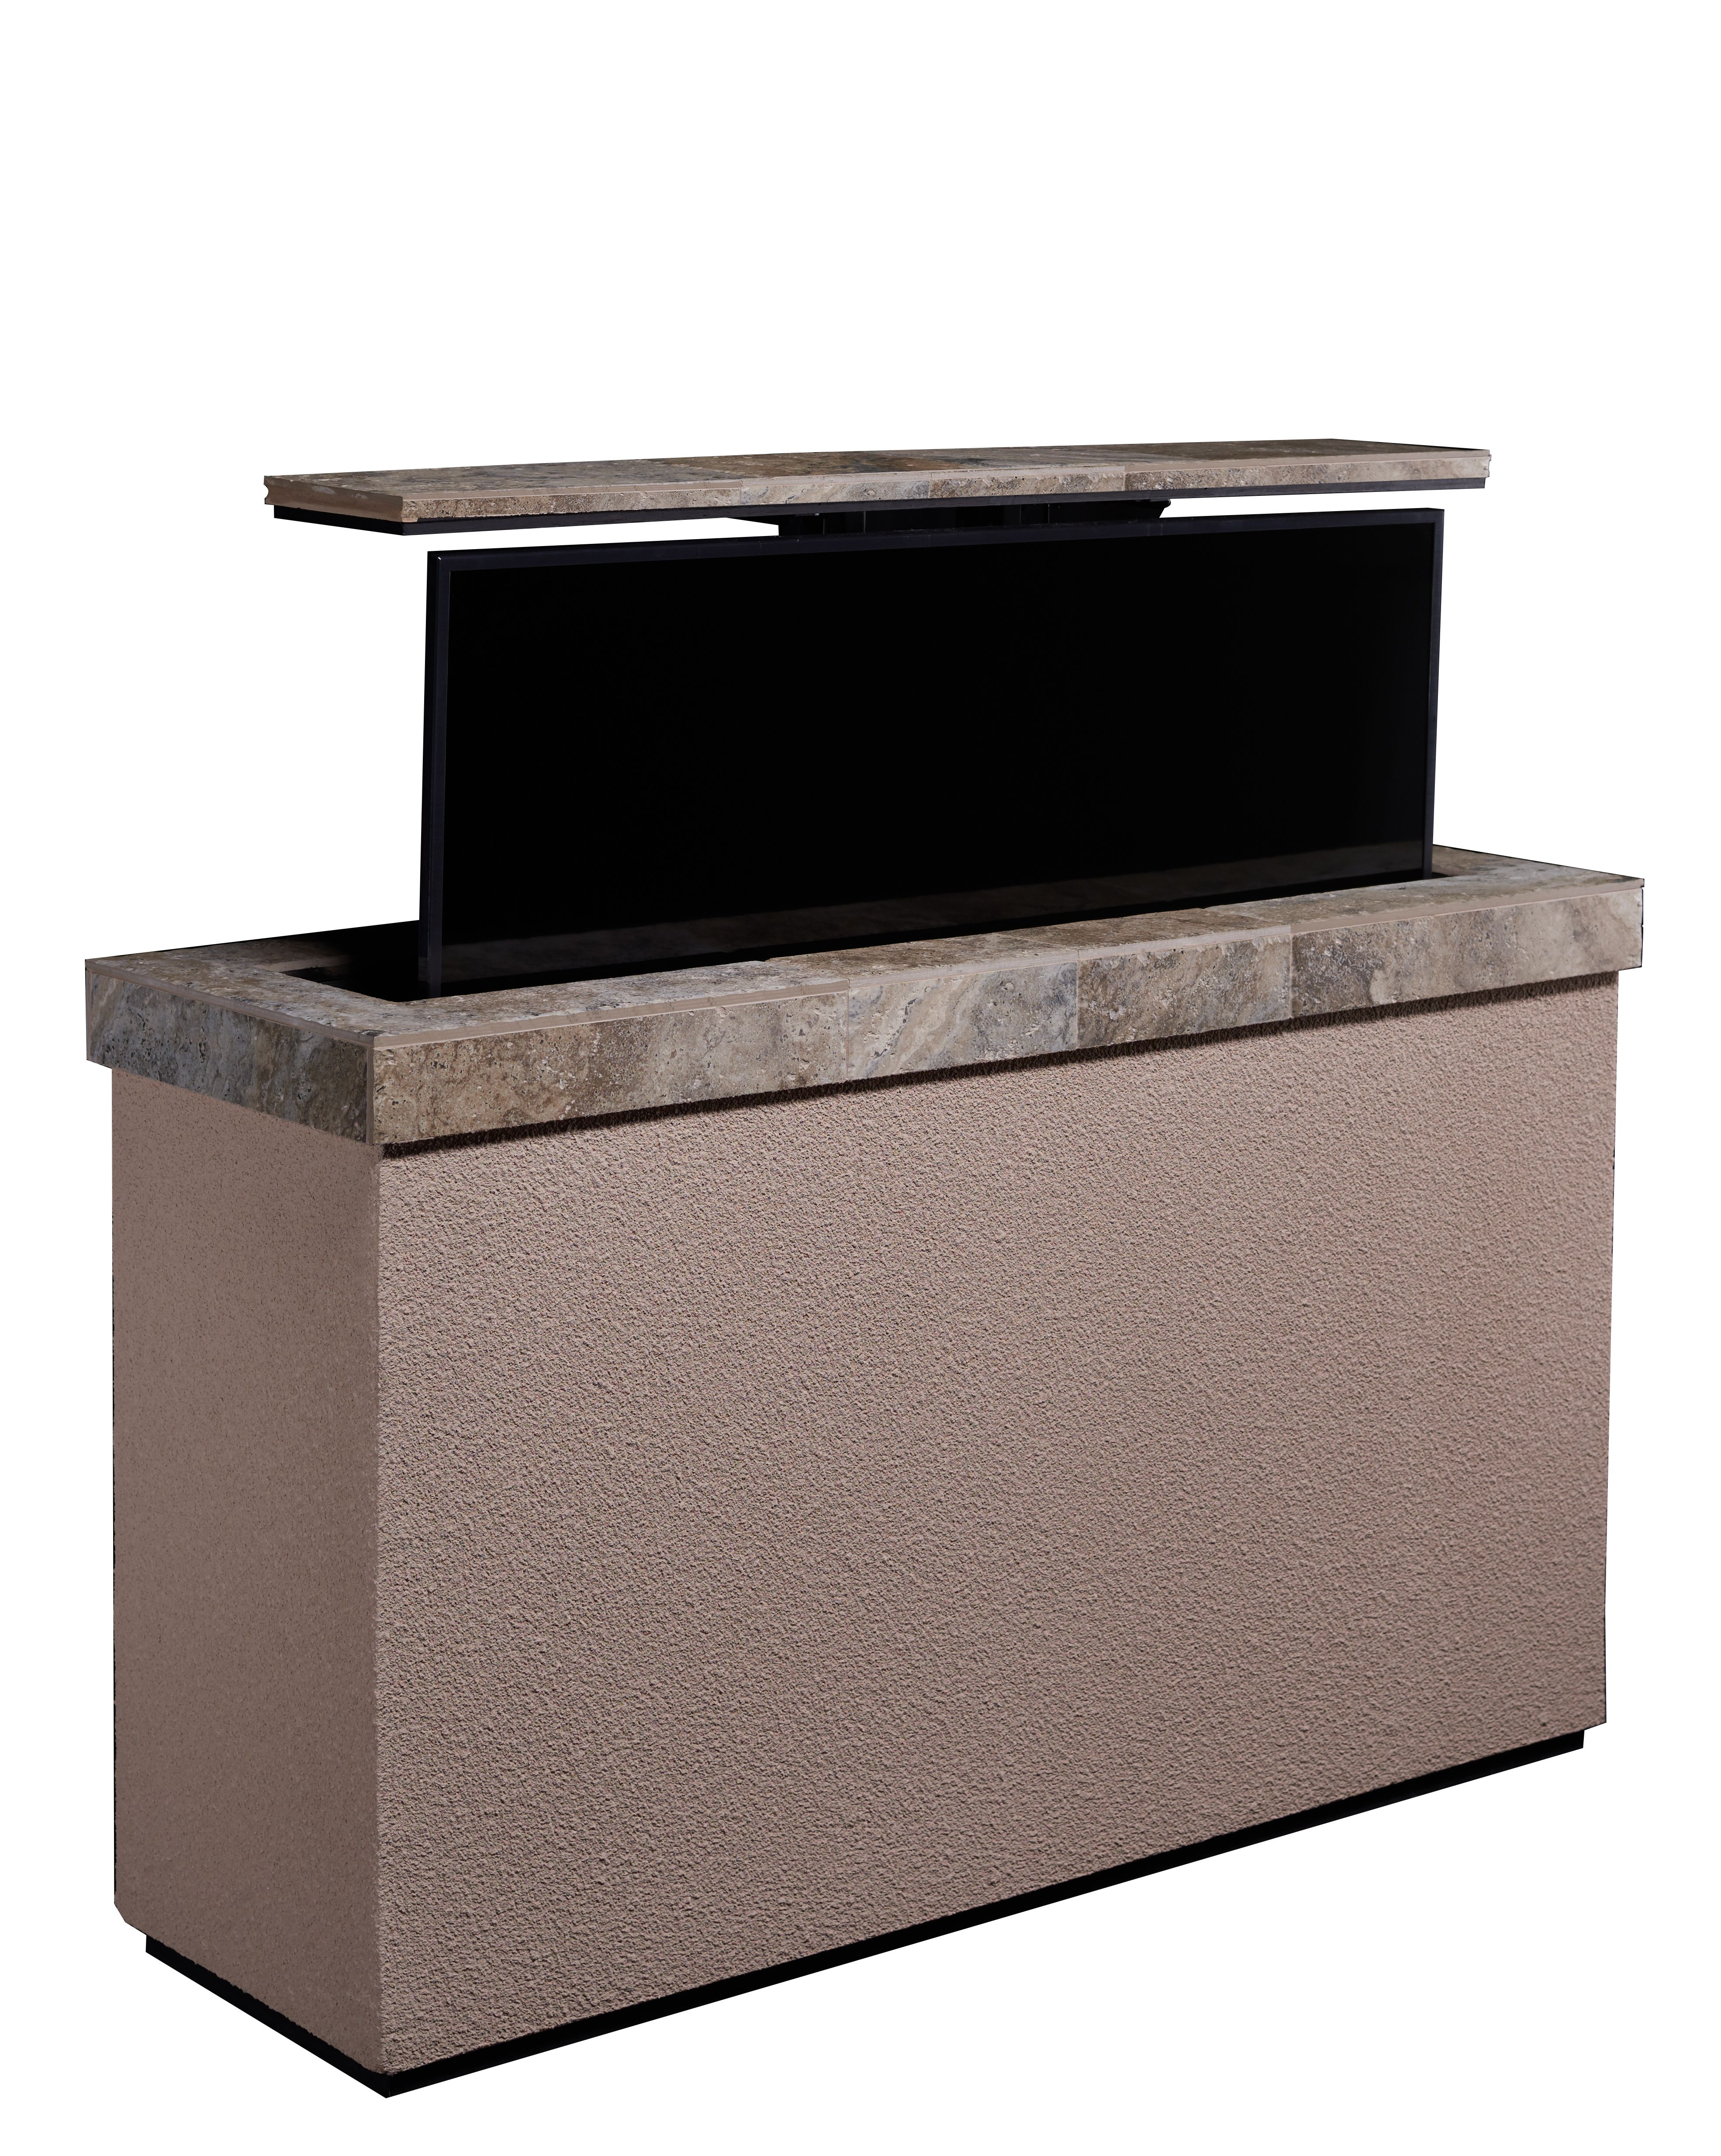 Stucco Island With Tv Hidden In It By Electric Lift System Select From Any Color Stucco Finish Keep Tv Saf Tv Lift Cabinet Outdoor Weatherproof Tv Cabinets